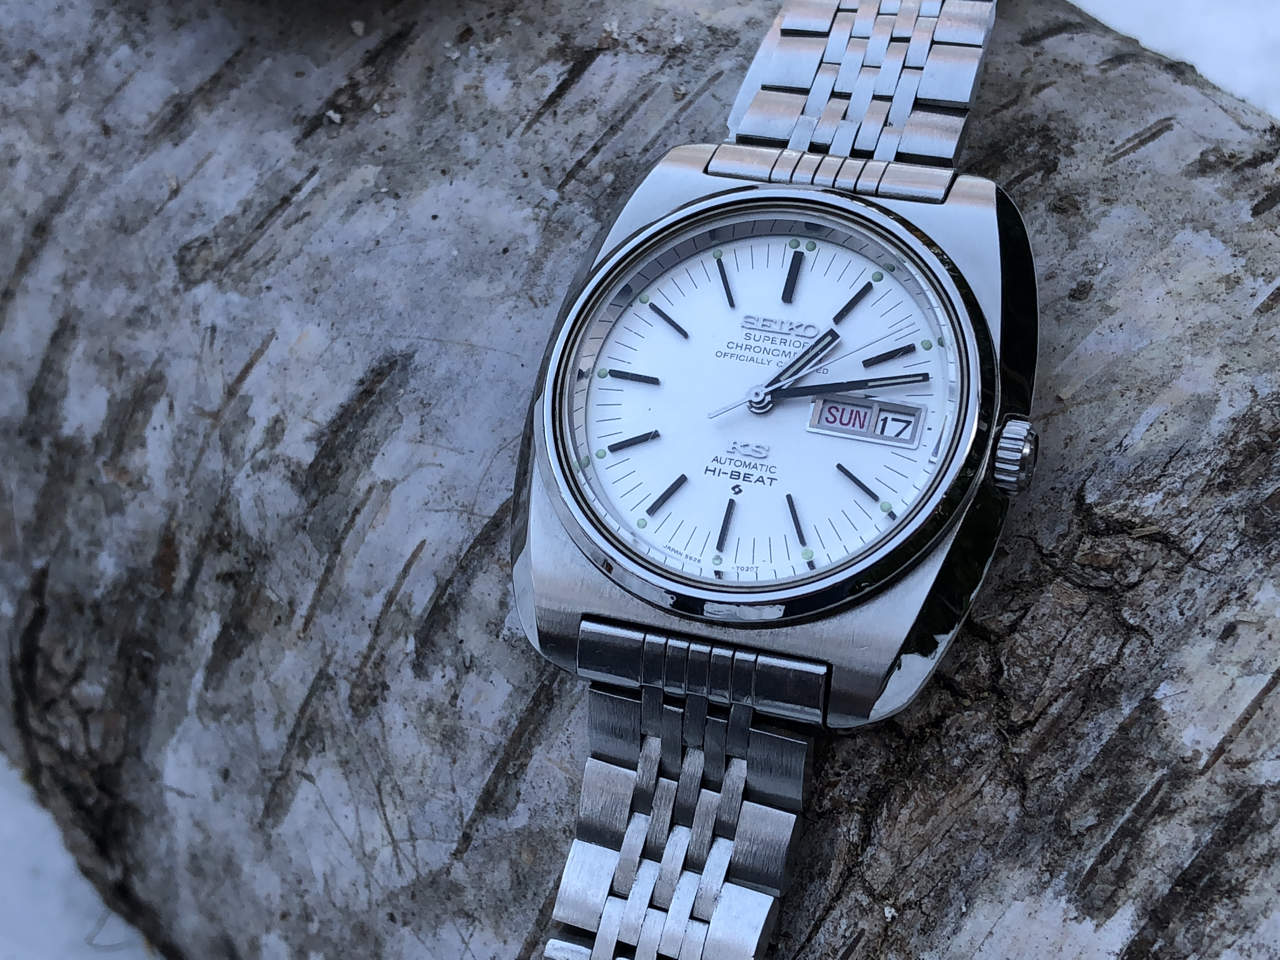 King Seiko Superior Chronometer 5626-7030 (sold)